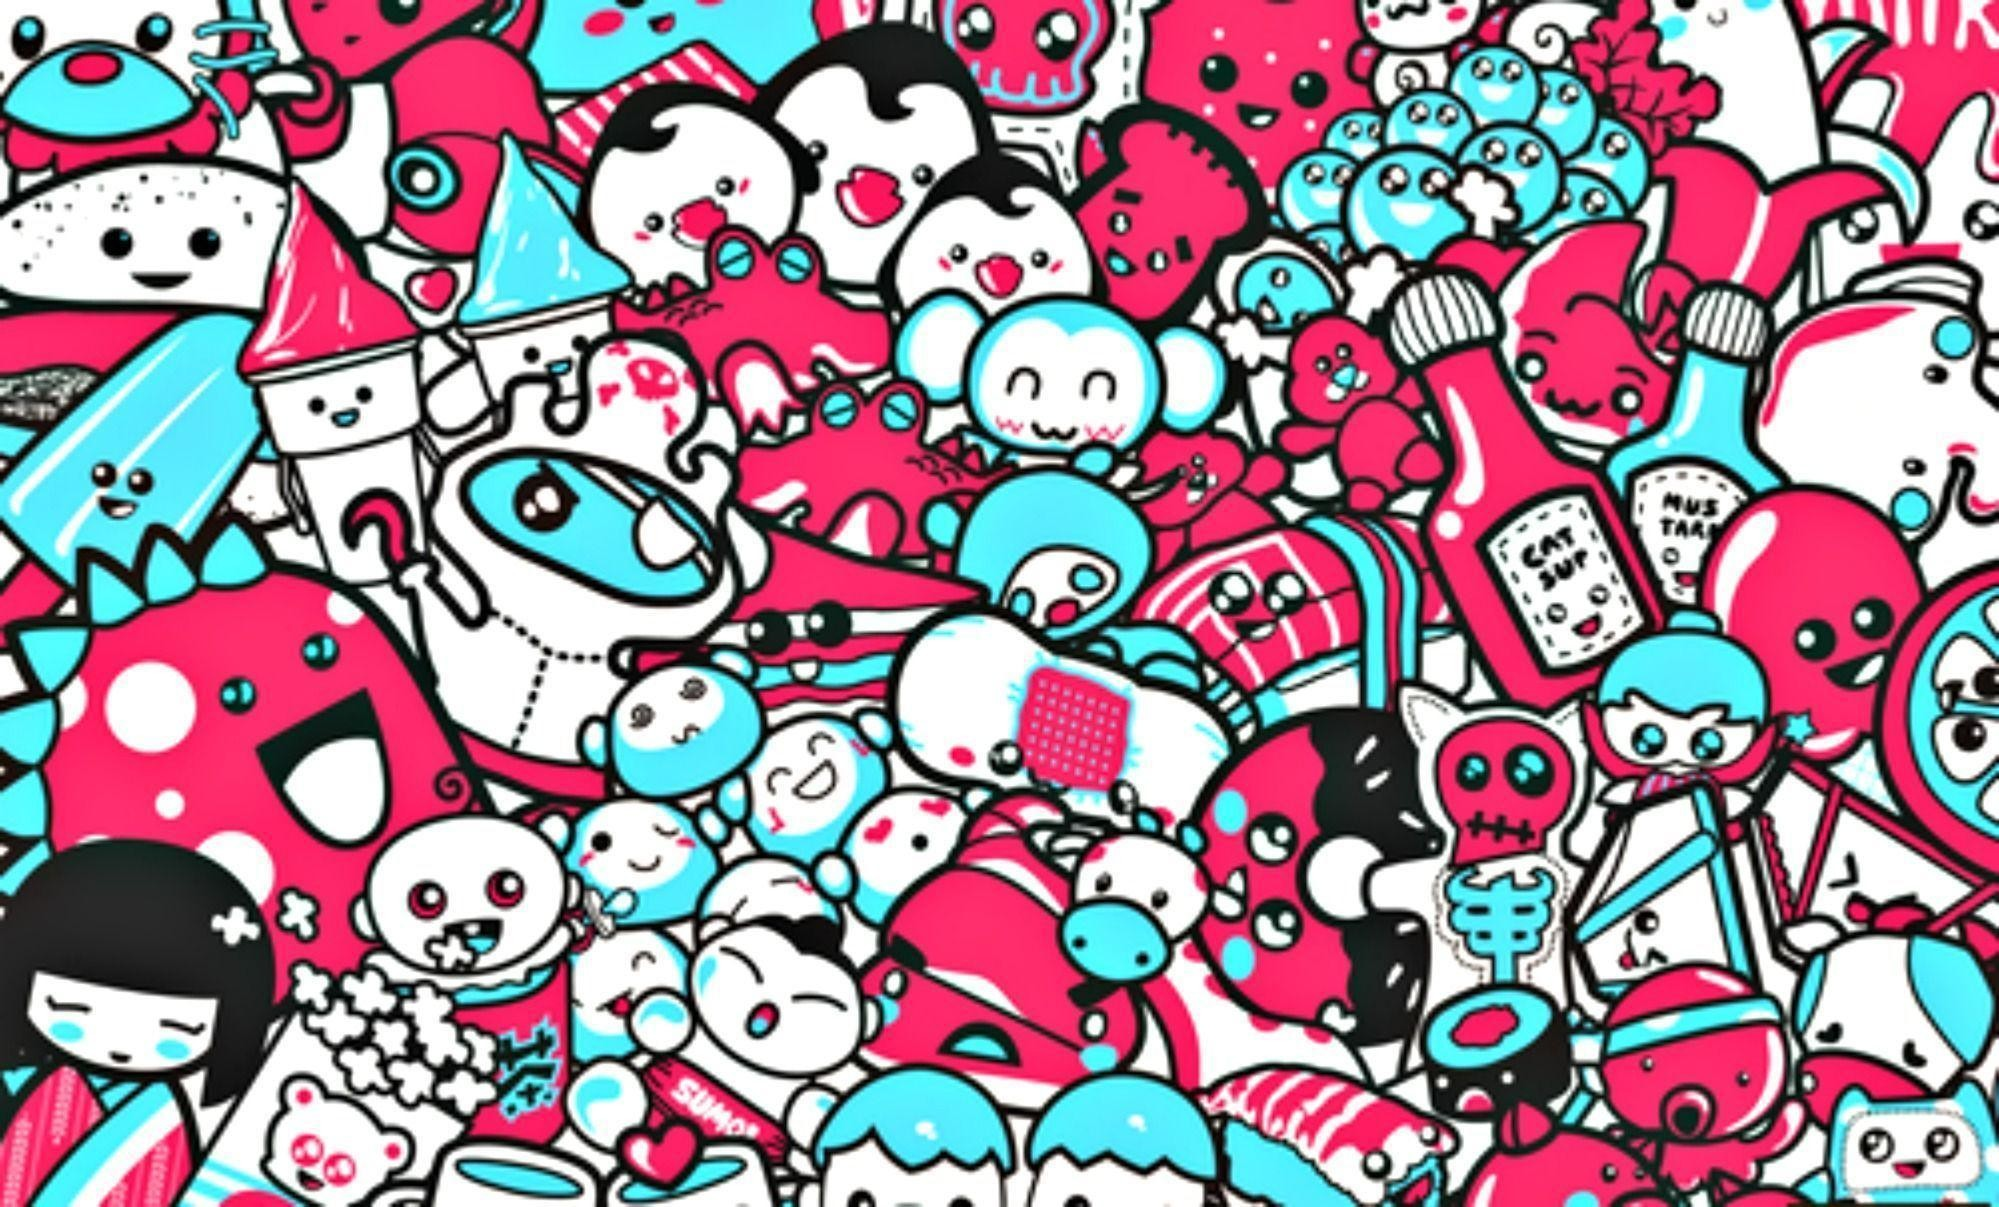 1999x1207 Wallpapers For > Cute Skull Wallpapers